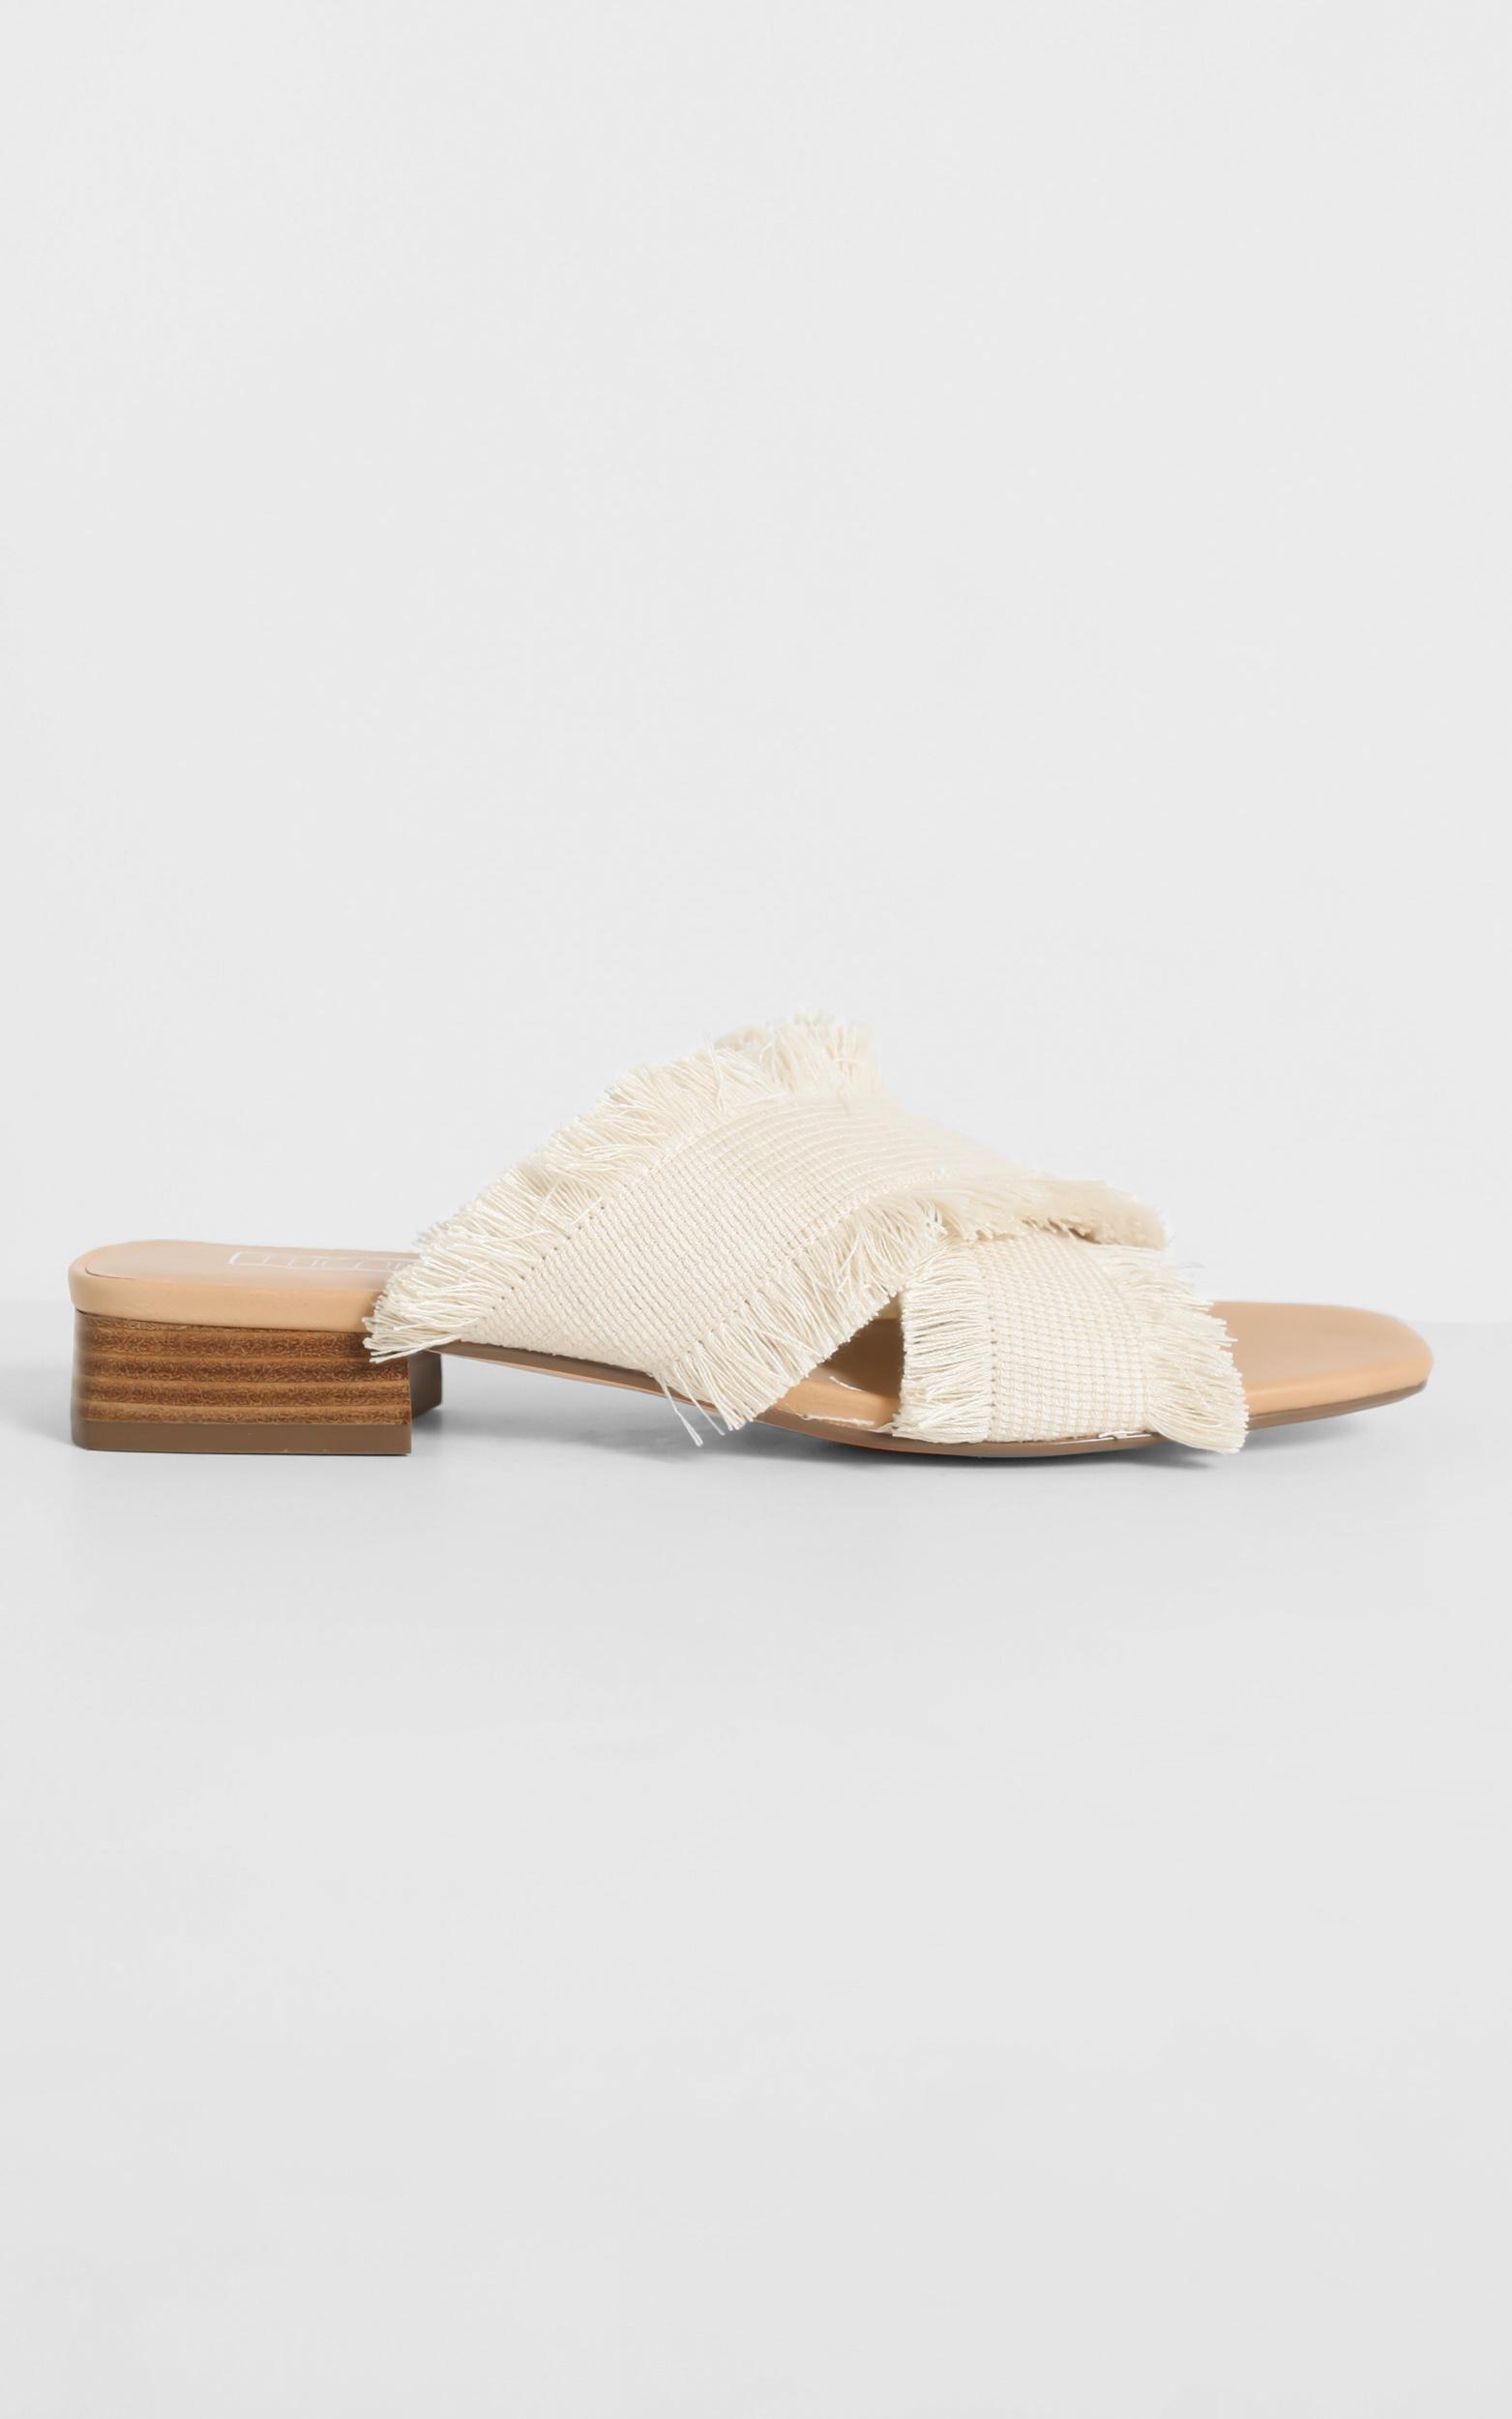 Therapy - Lulu Heels in Natural Fabric - 5, NEU5, hi-res image number null